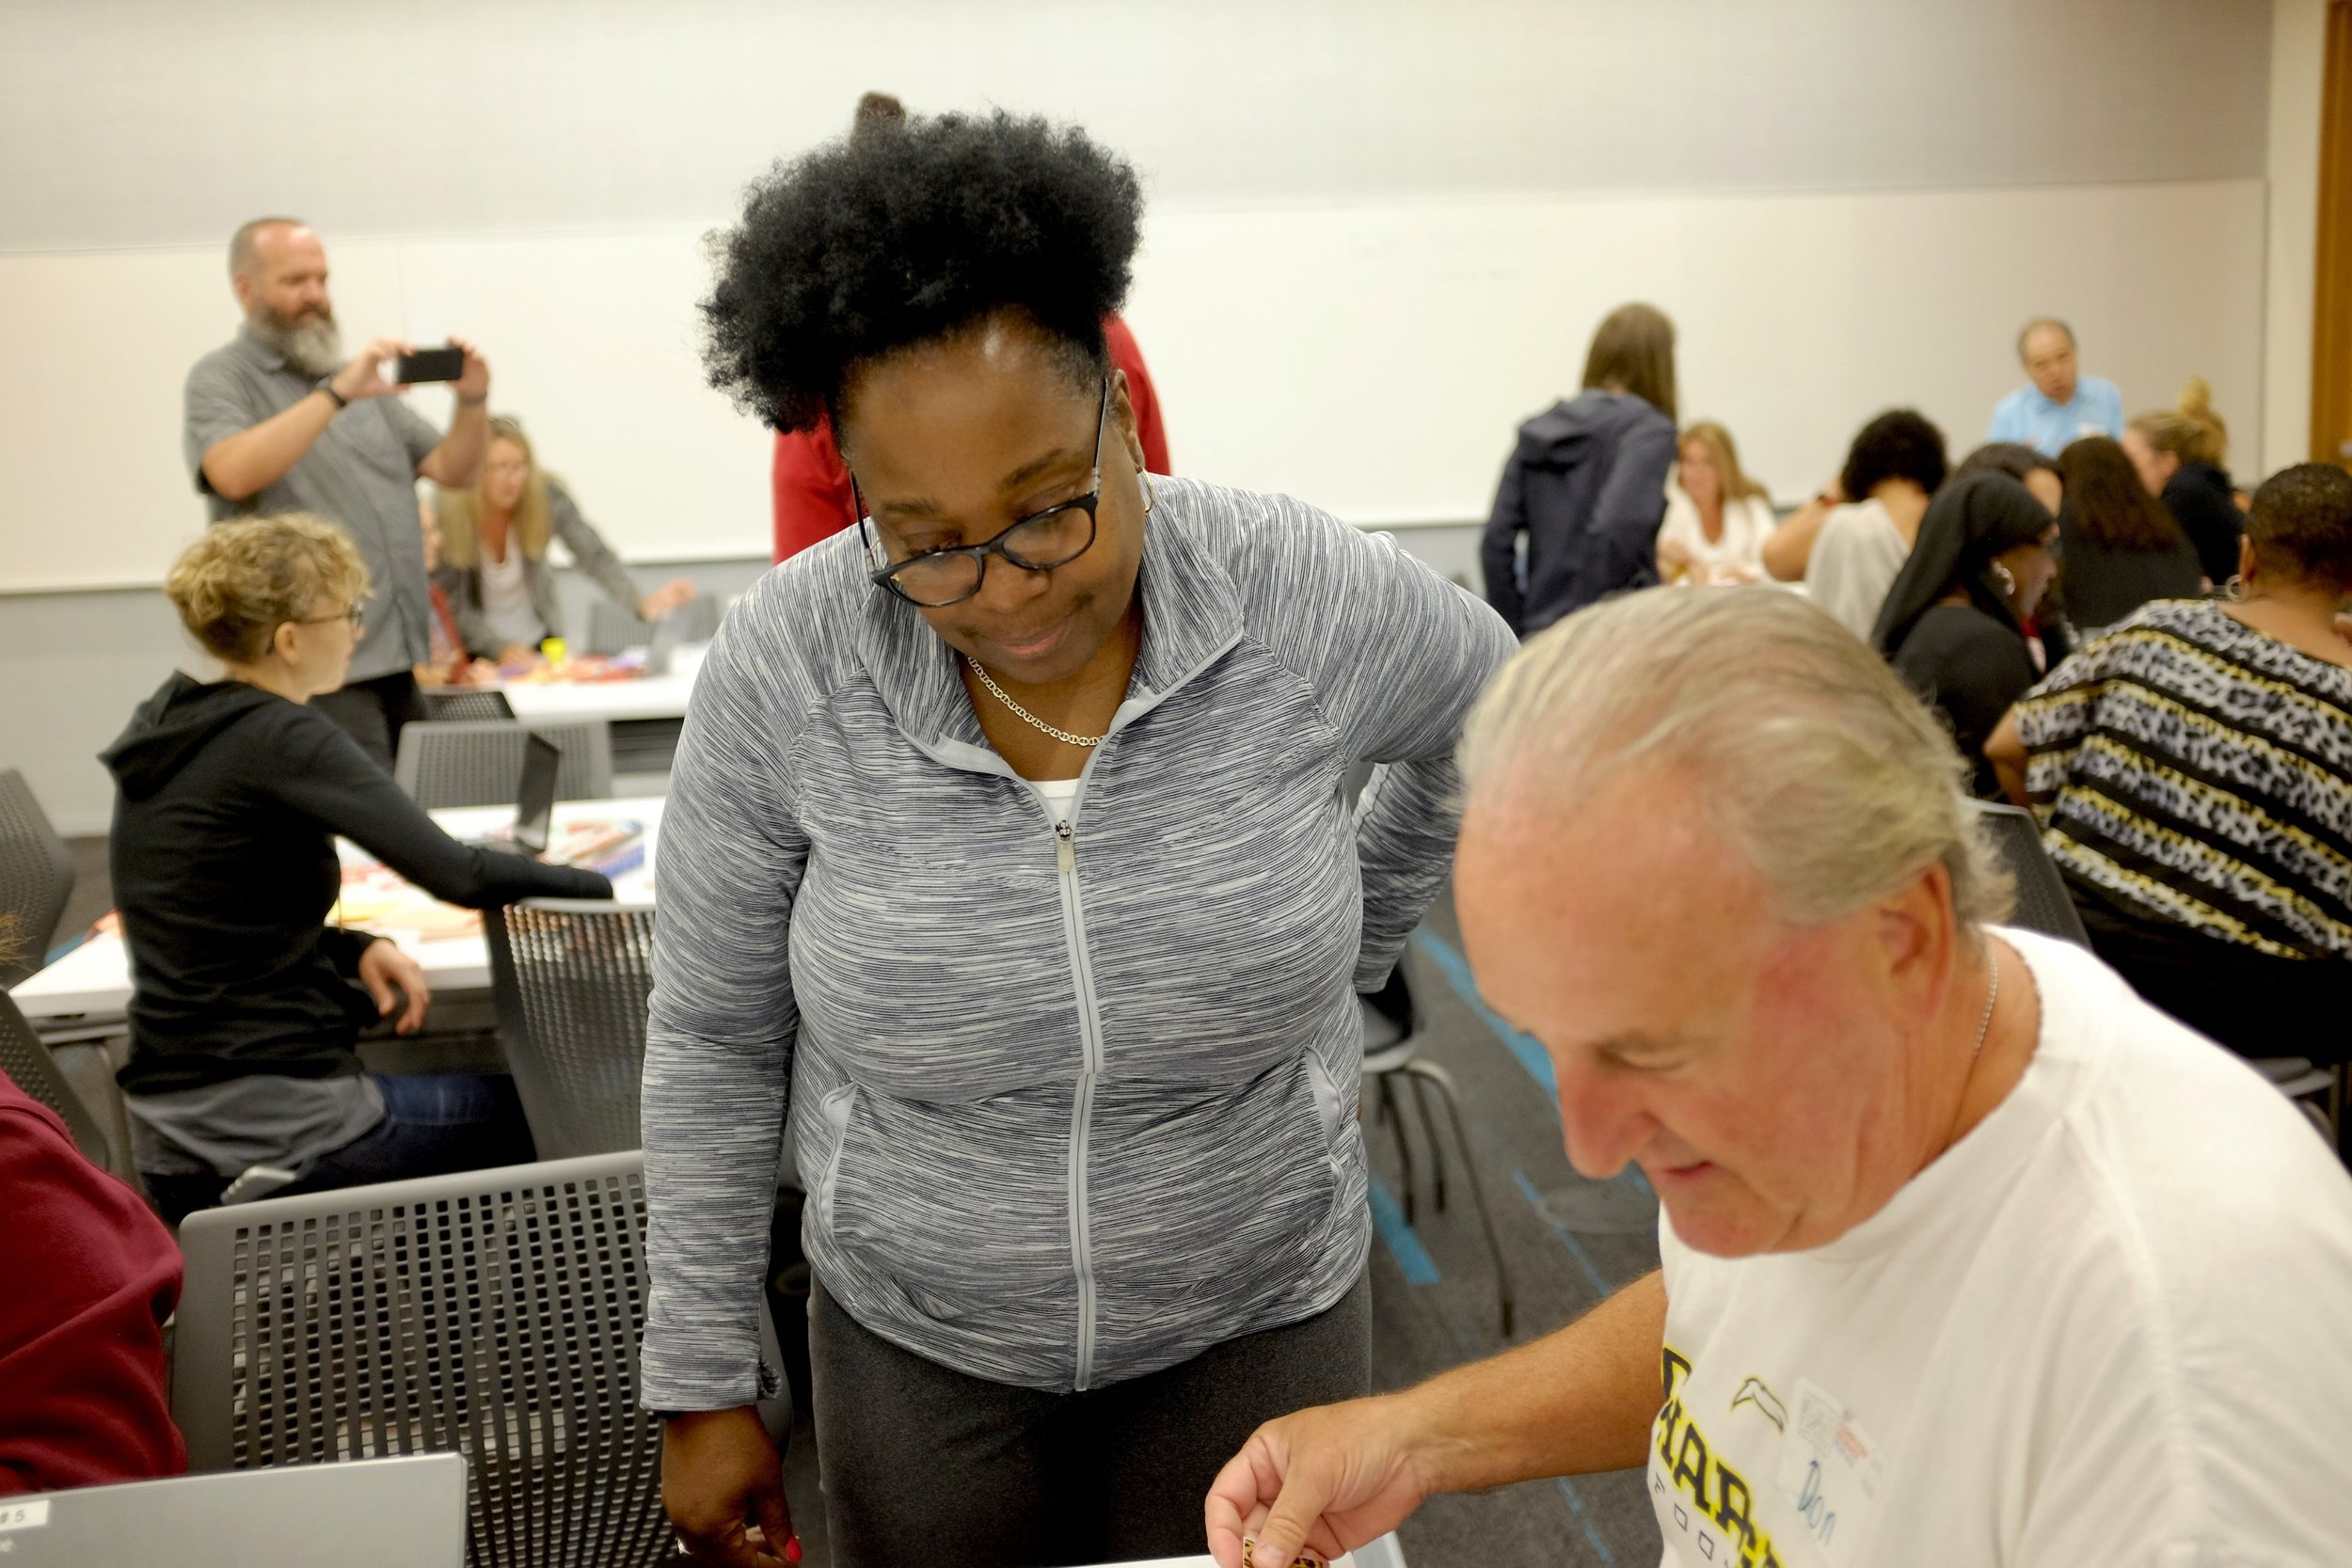 Cecelia Holt-Washington (left) supporting an activity at the SEPjr. training